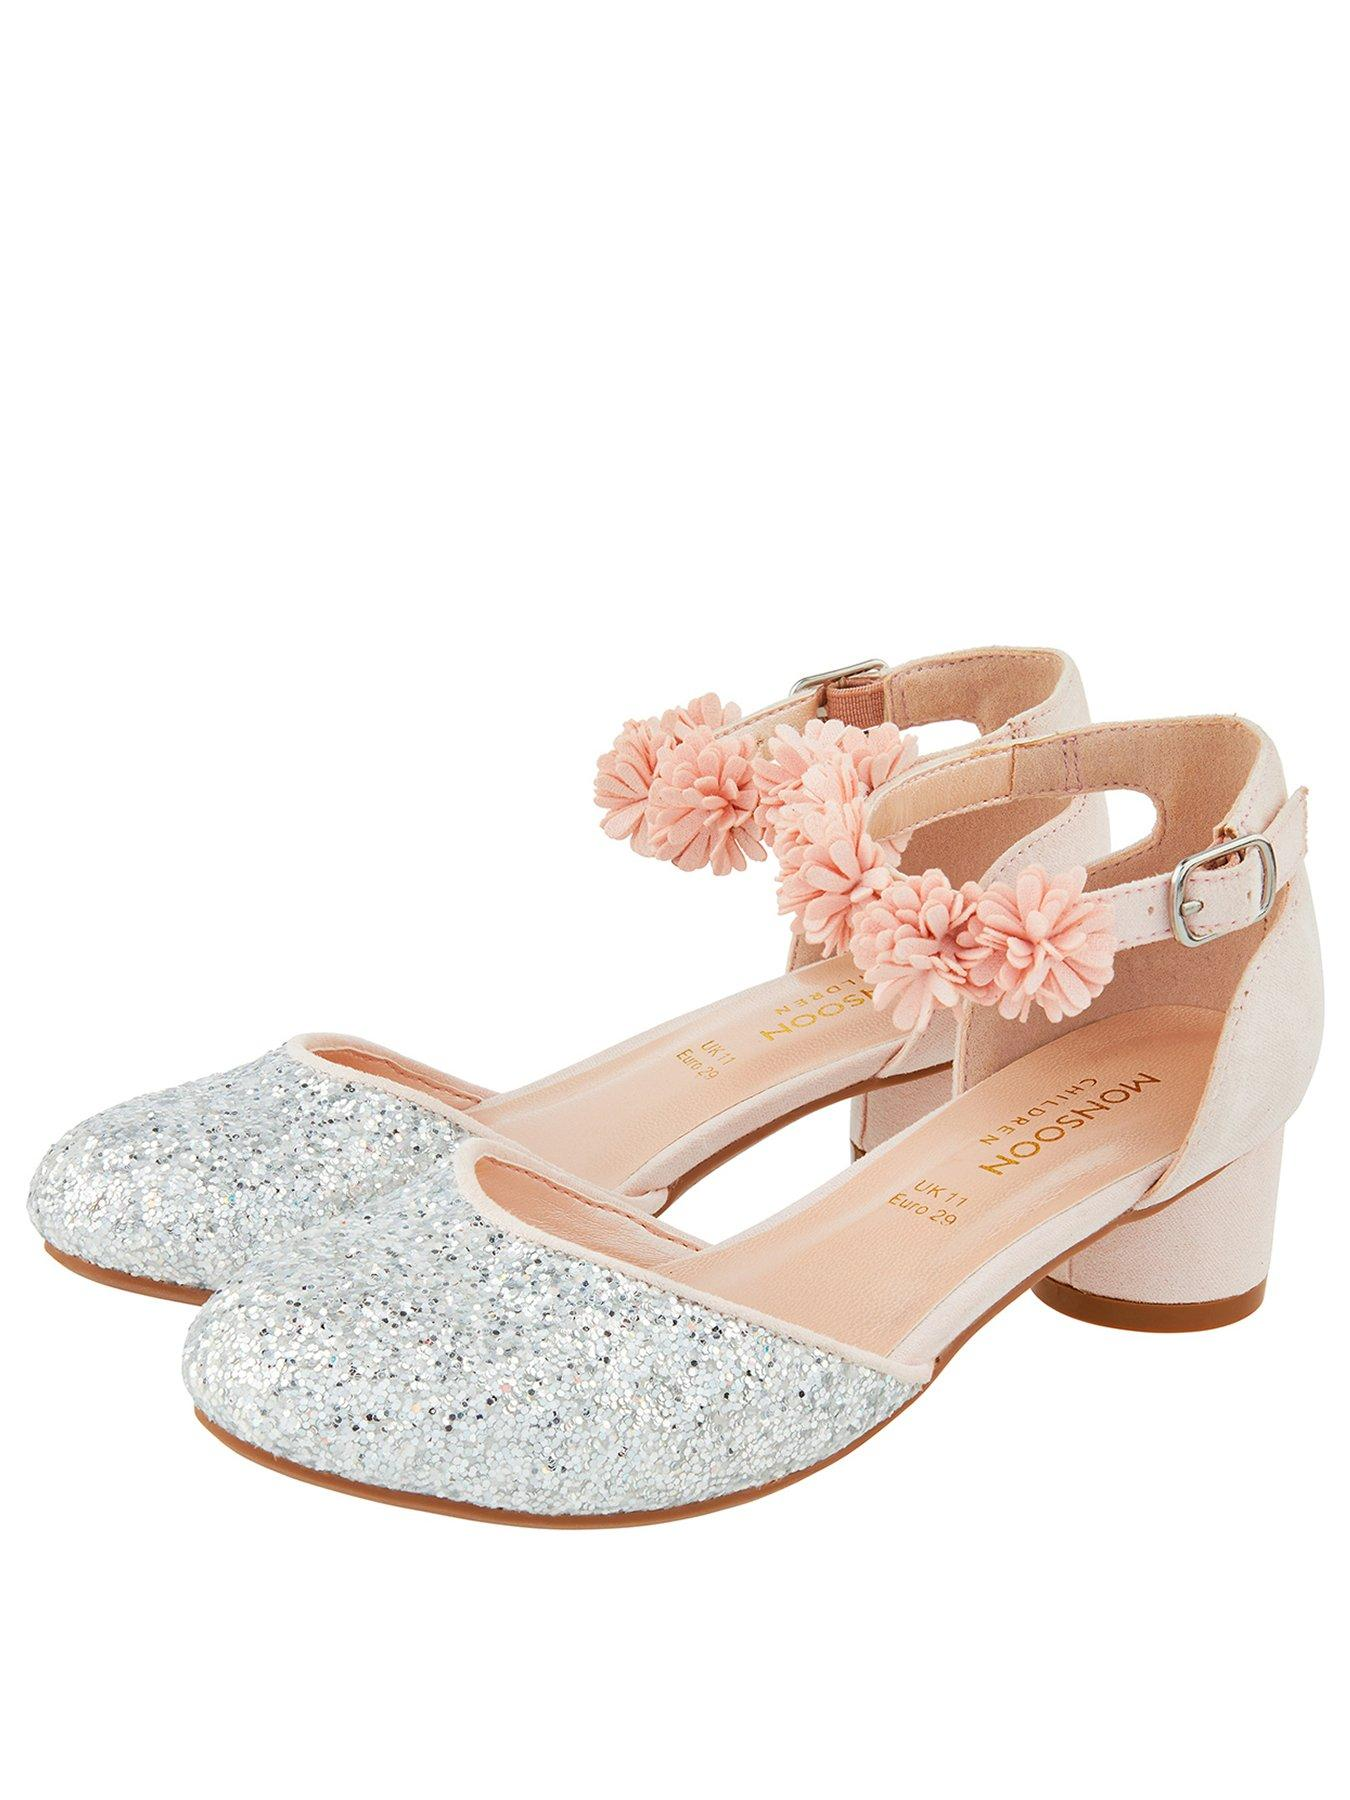 Girls kids dusky pink glitter sparkly party heeled shoes dressing up occasion